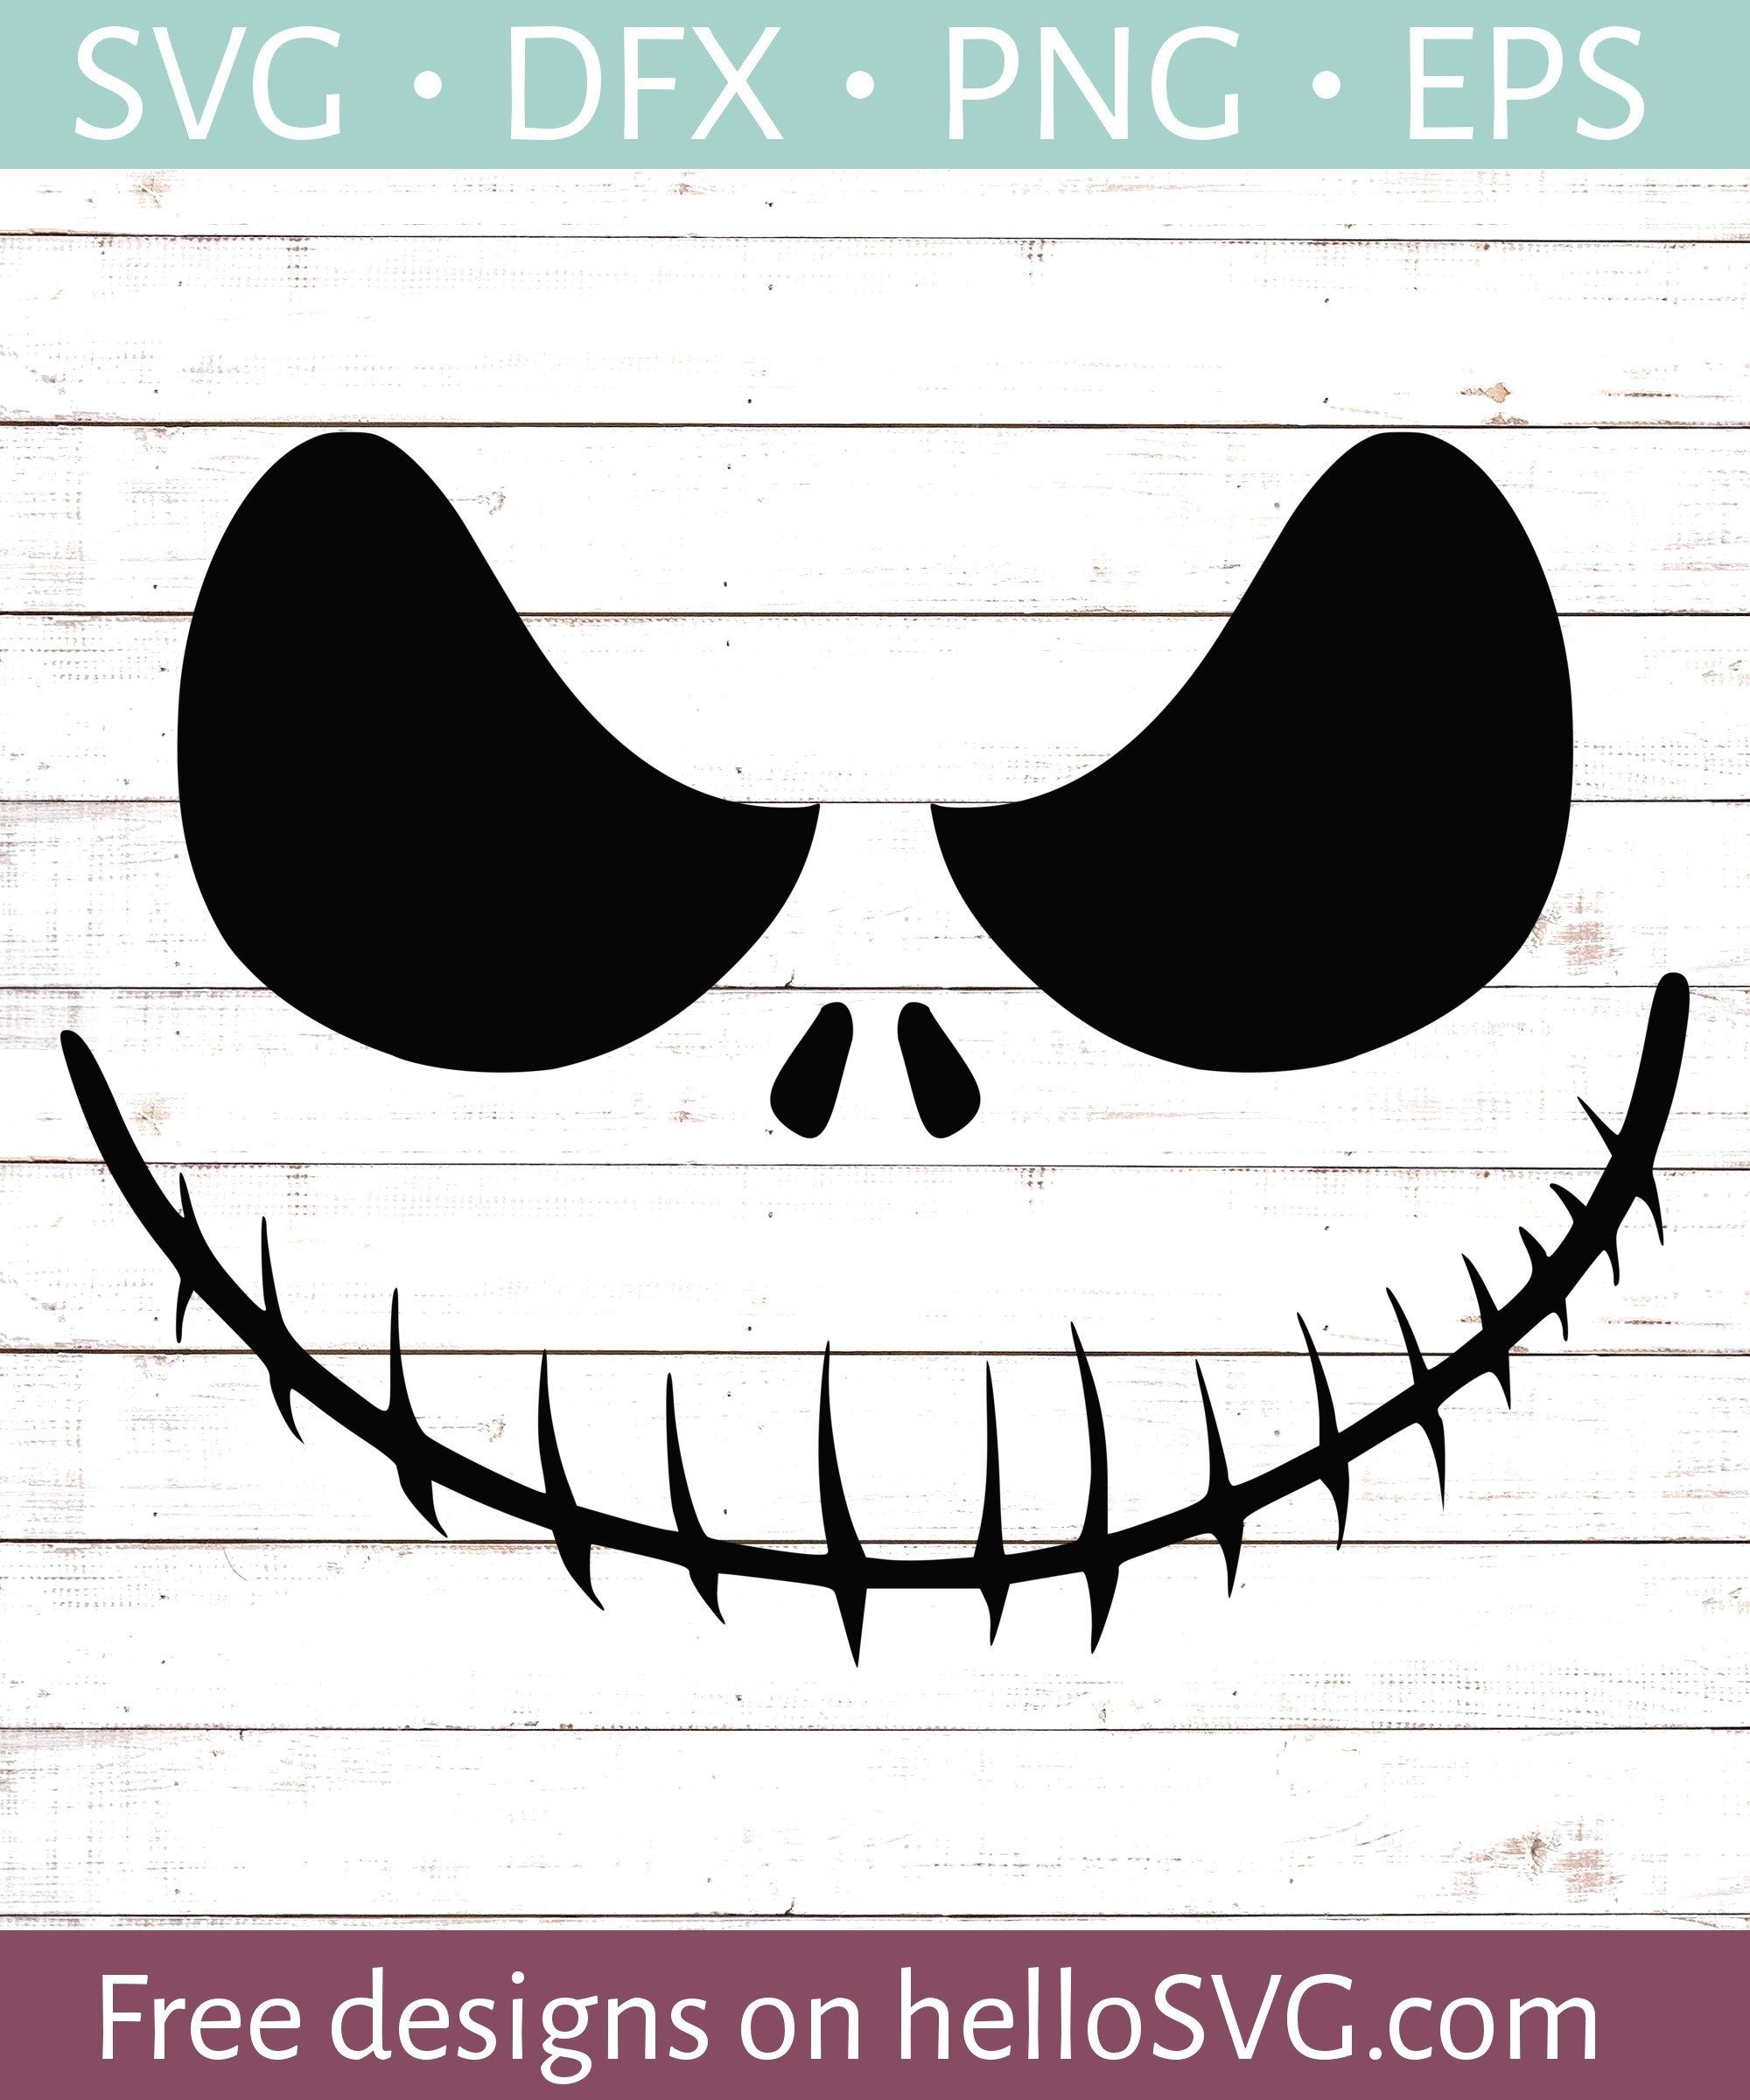 Nightmare Ghoul Smiling SVG - Free SVG files | HelloSVG com | SVG